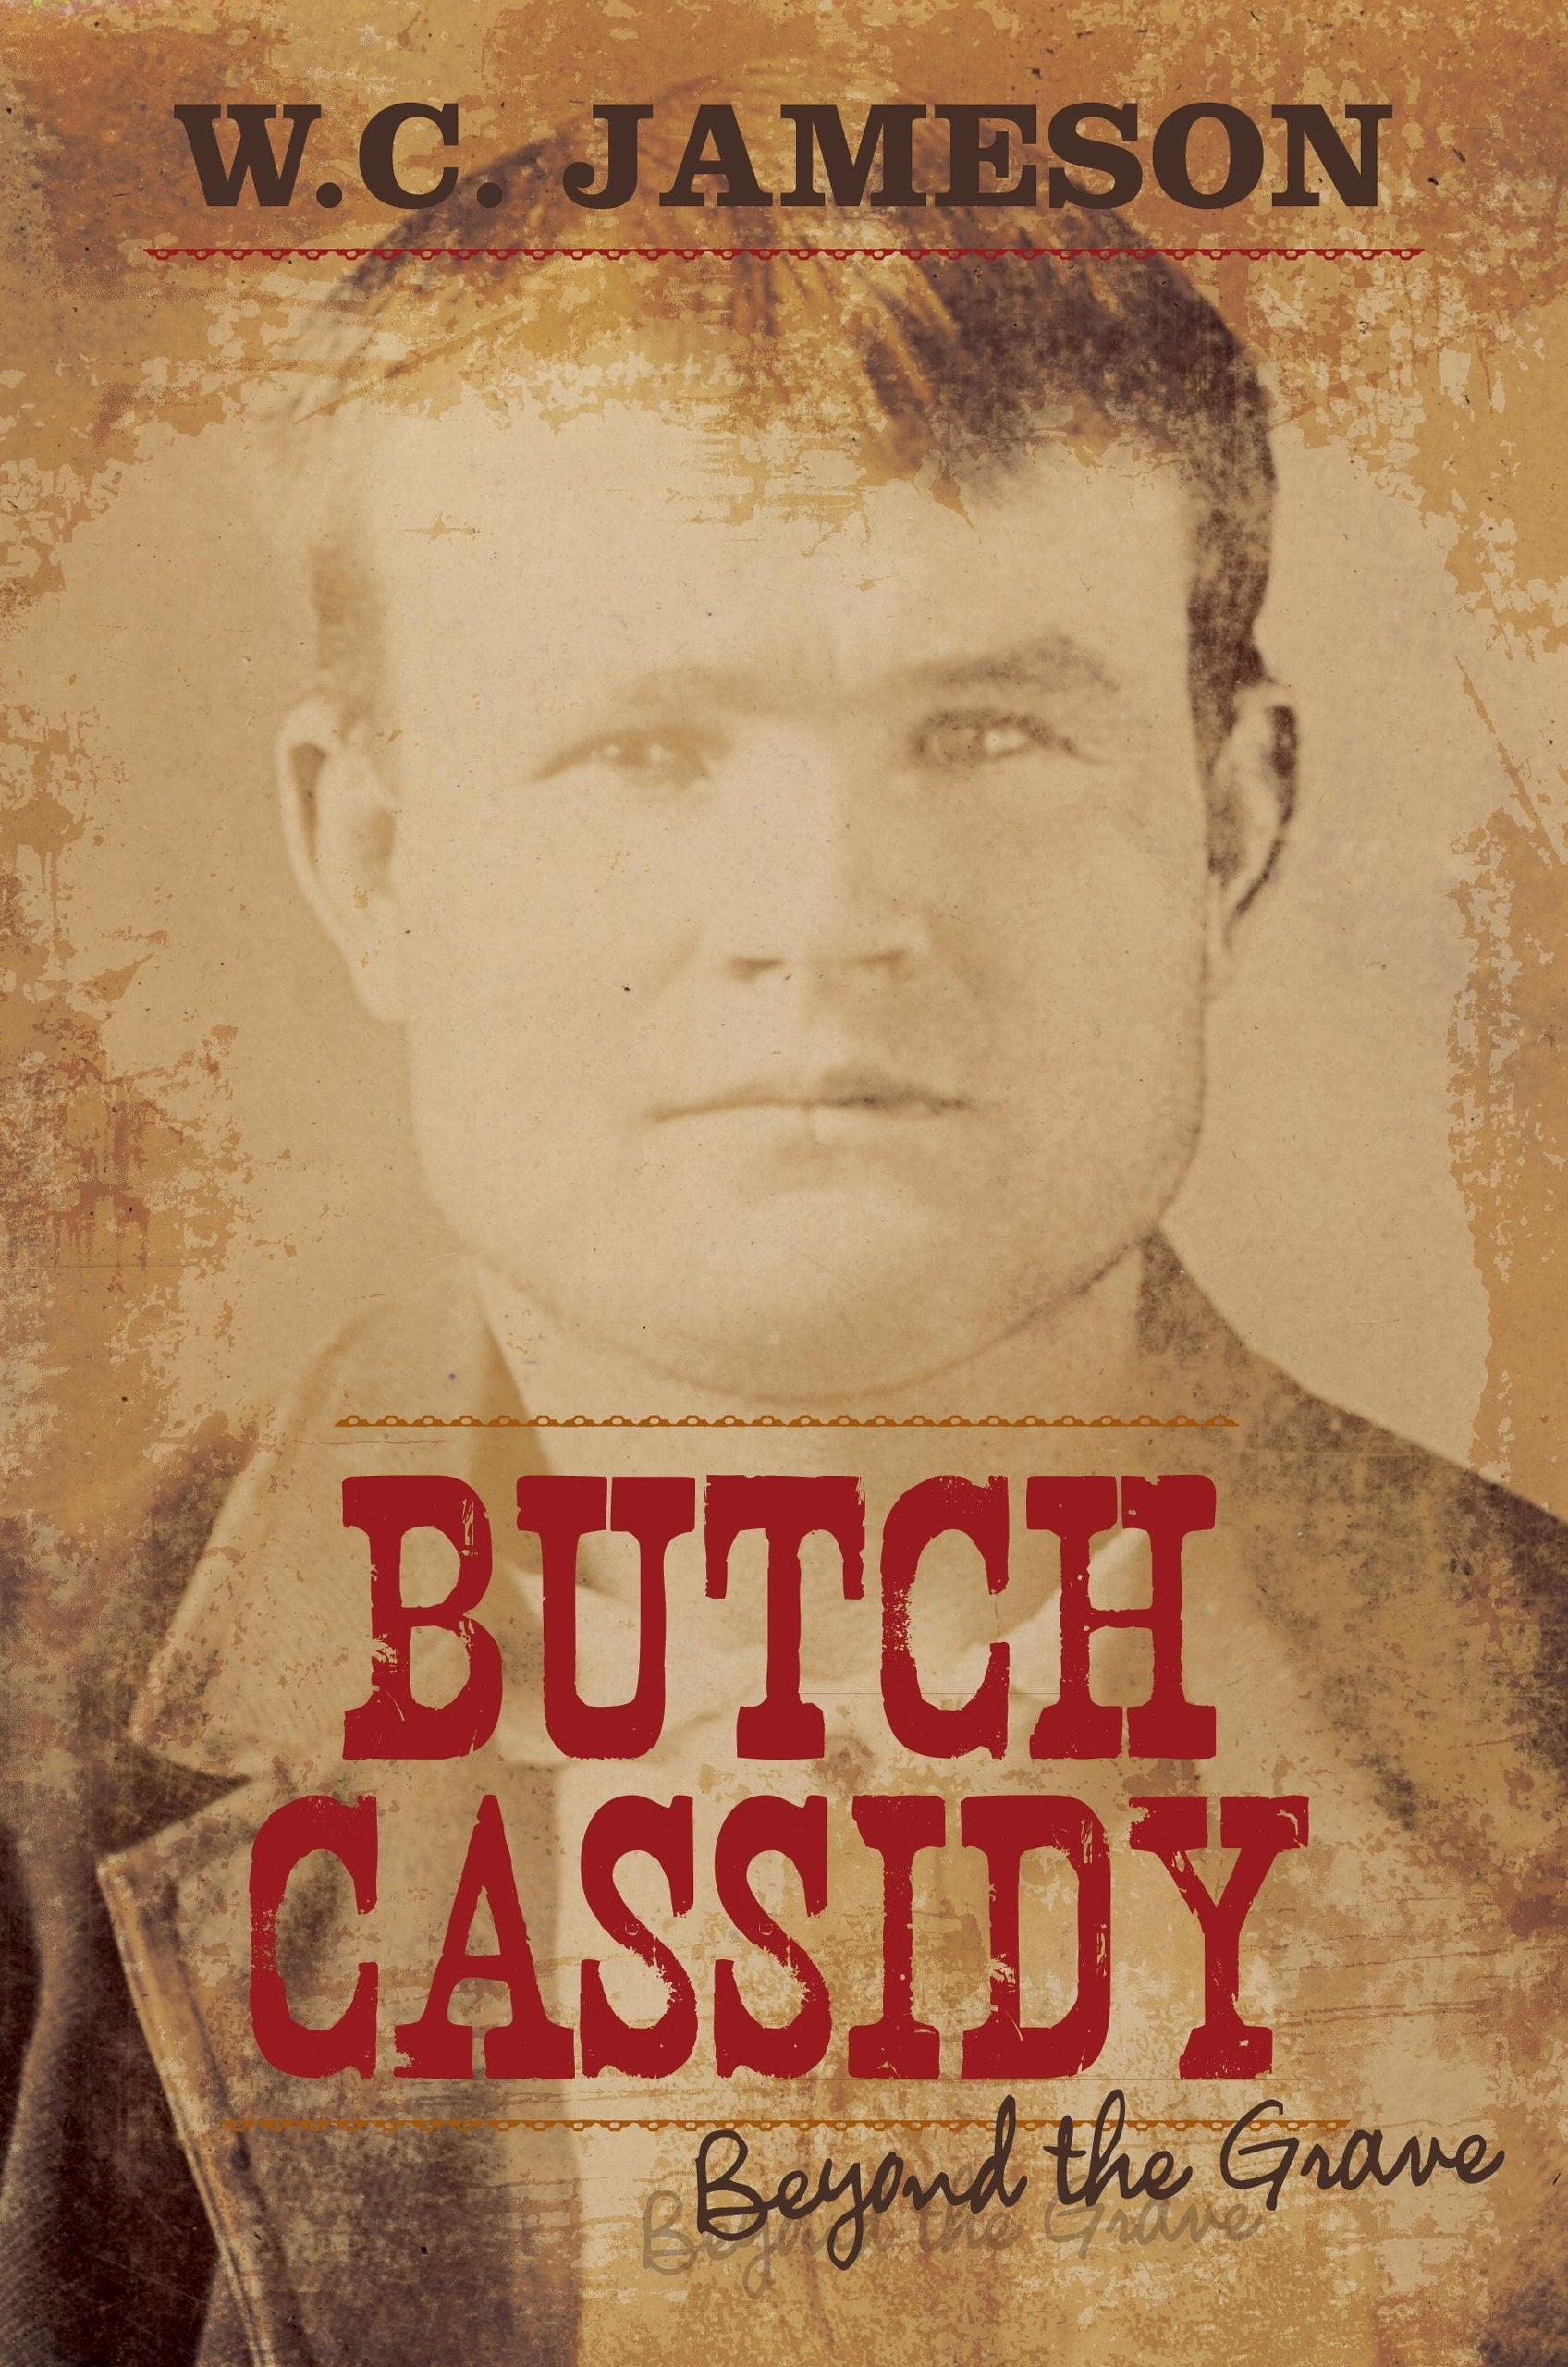 Butch Cassidy Beyond The Grave